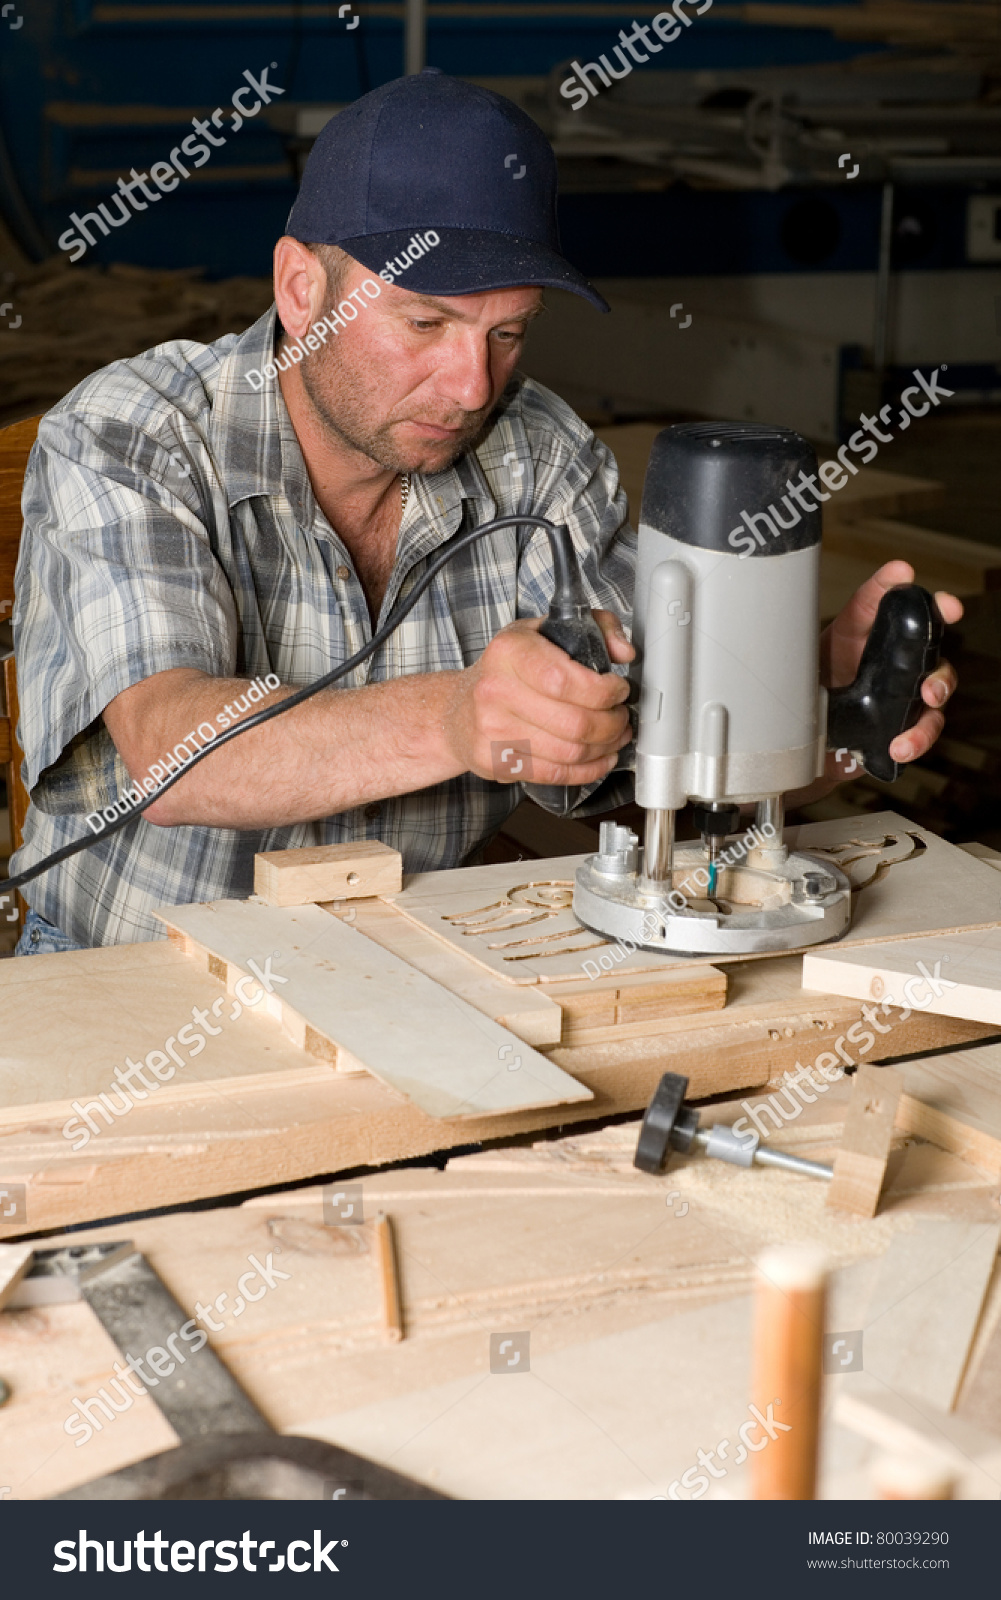 Carpentry Carpenter Woodworker Woodworking Wooden: Carpenter Working Woodworking Shop Stock Photo 80039290